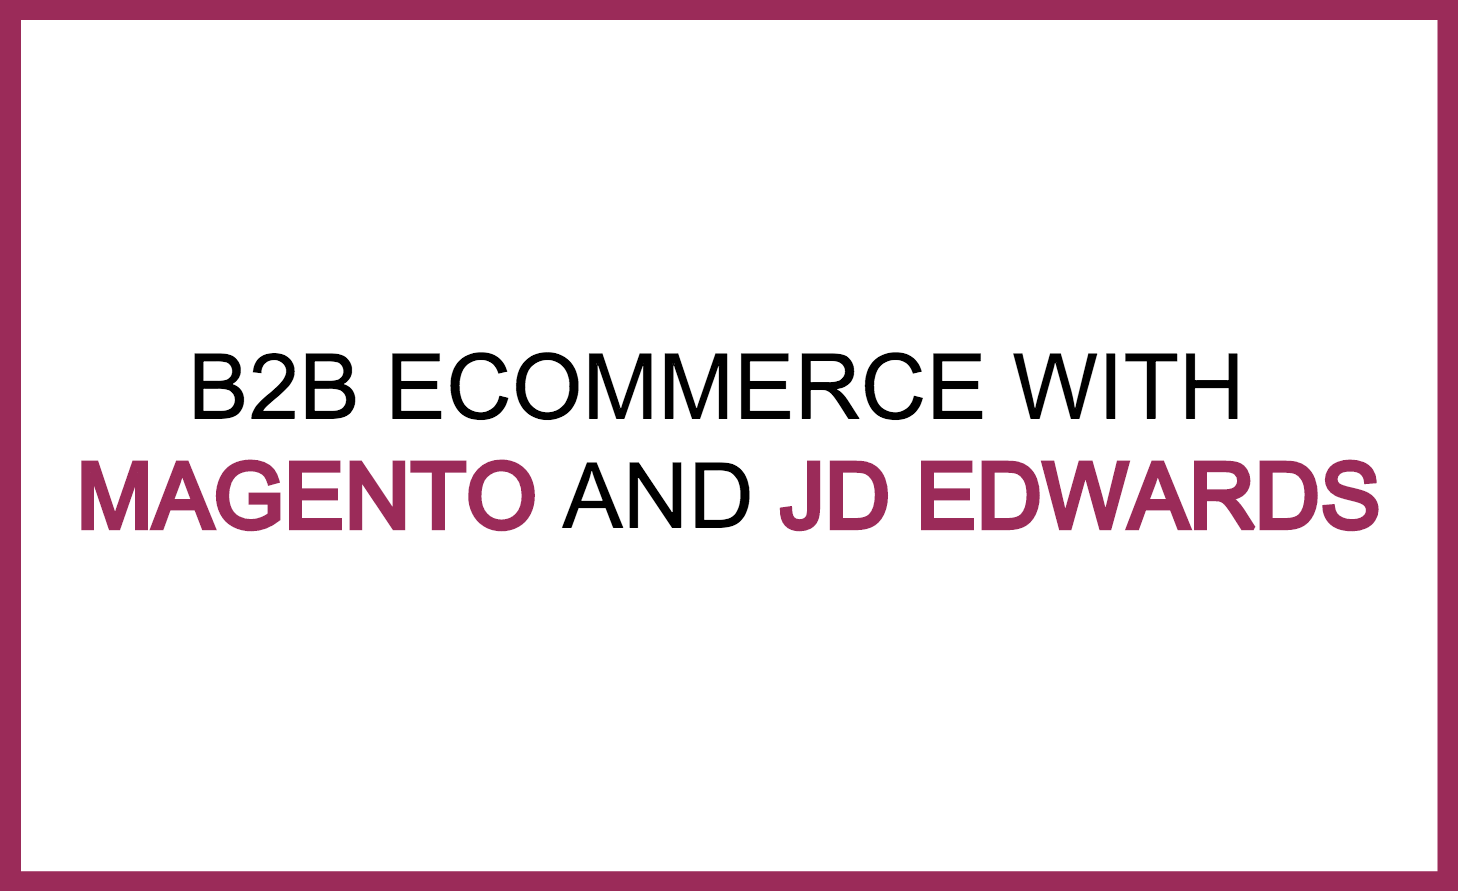 magento and jde b2b eCommerce.png